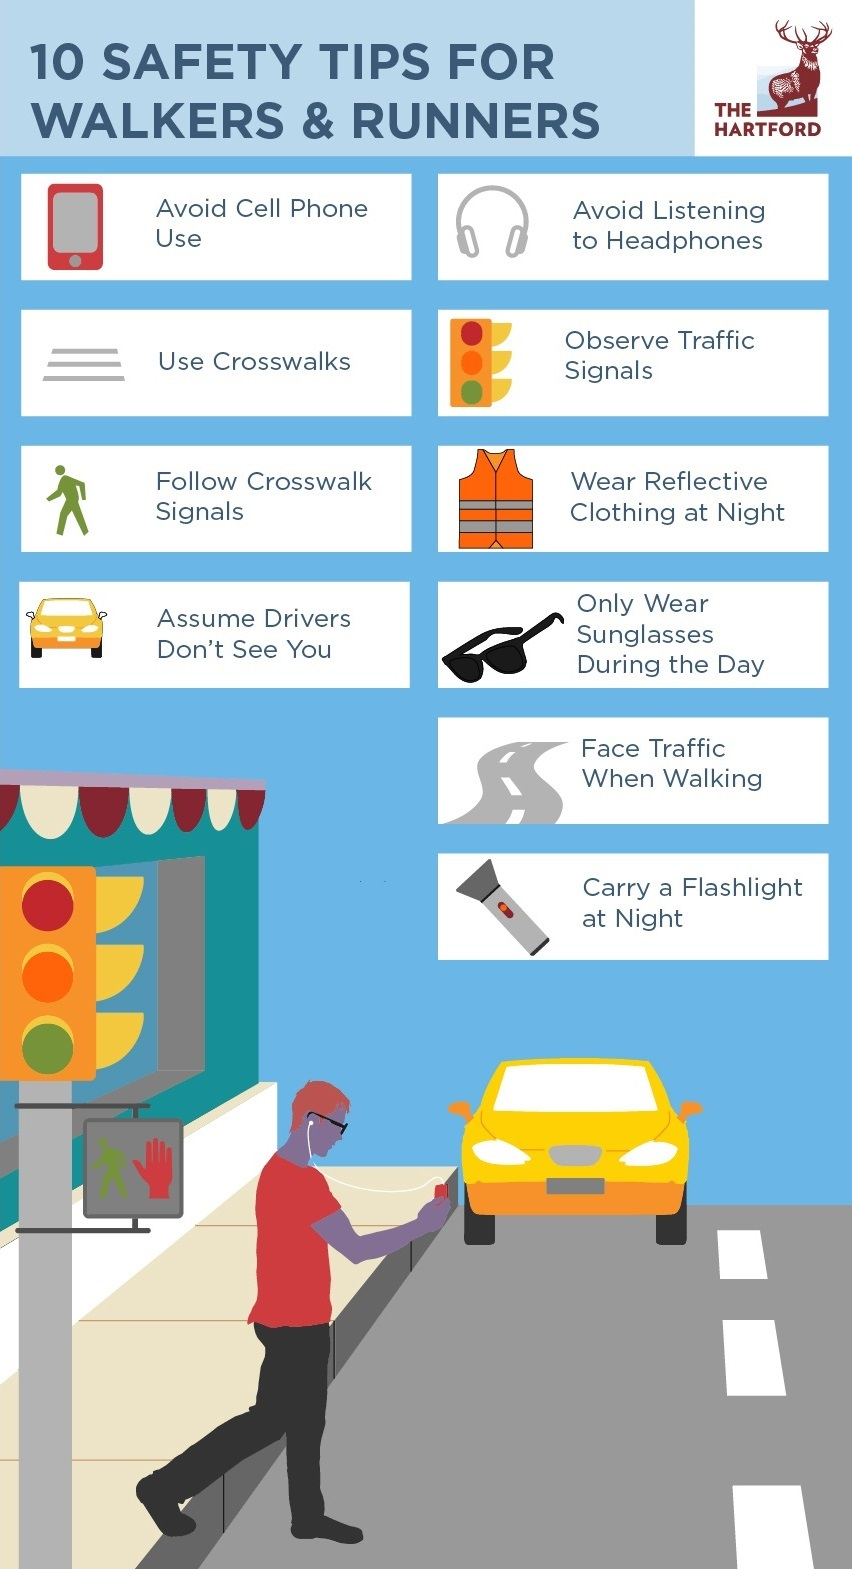 10 Safety Tips for Walkers and Runners Infographic